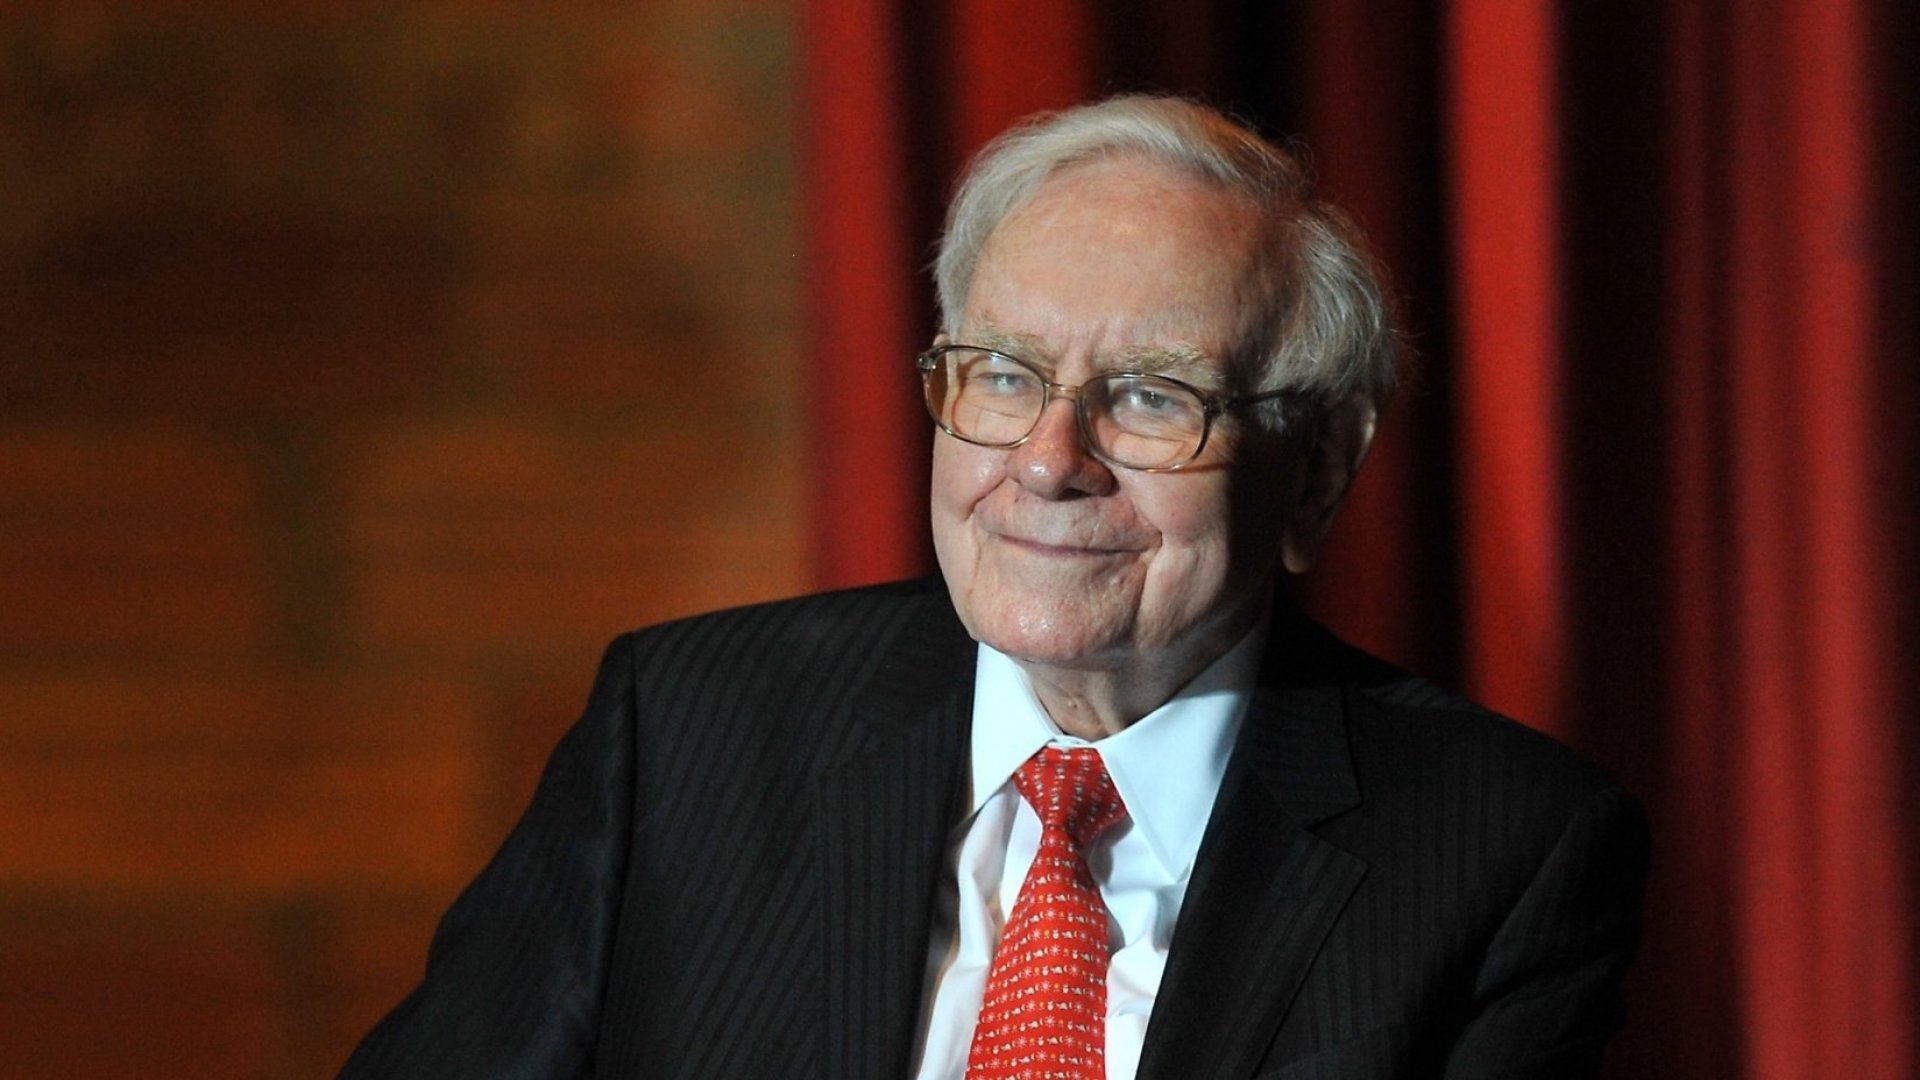 5 Things You Must Know From Warren Buffett's Latest Berkshire Hathaway Annual Meeting